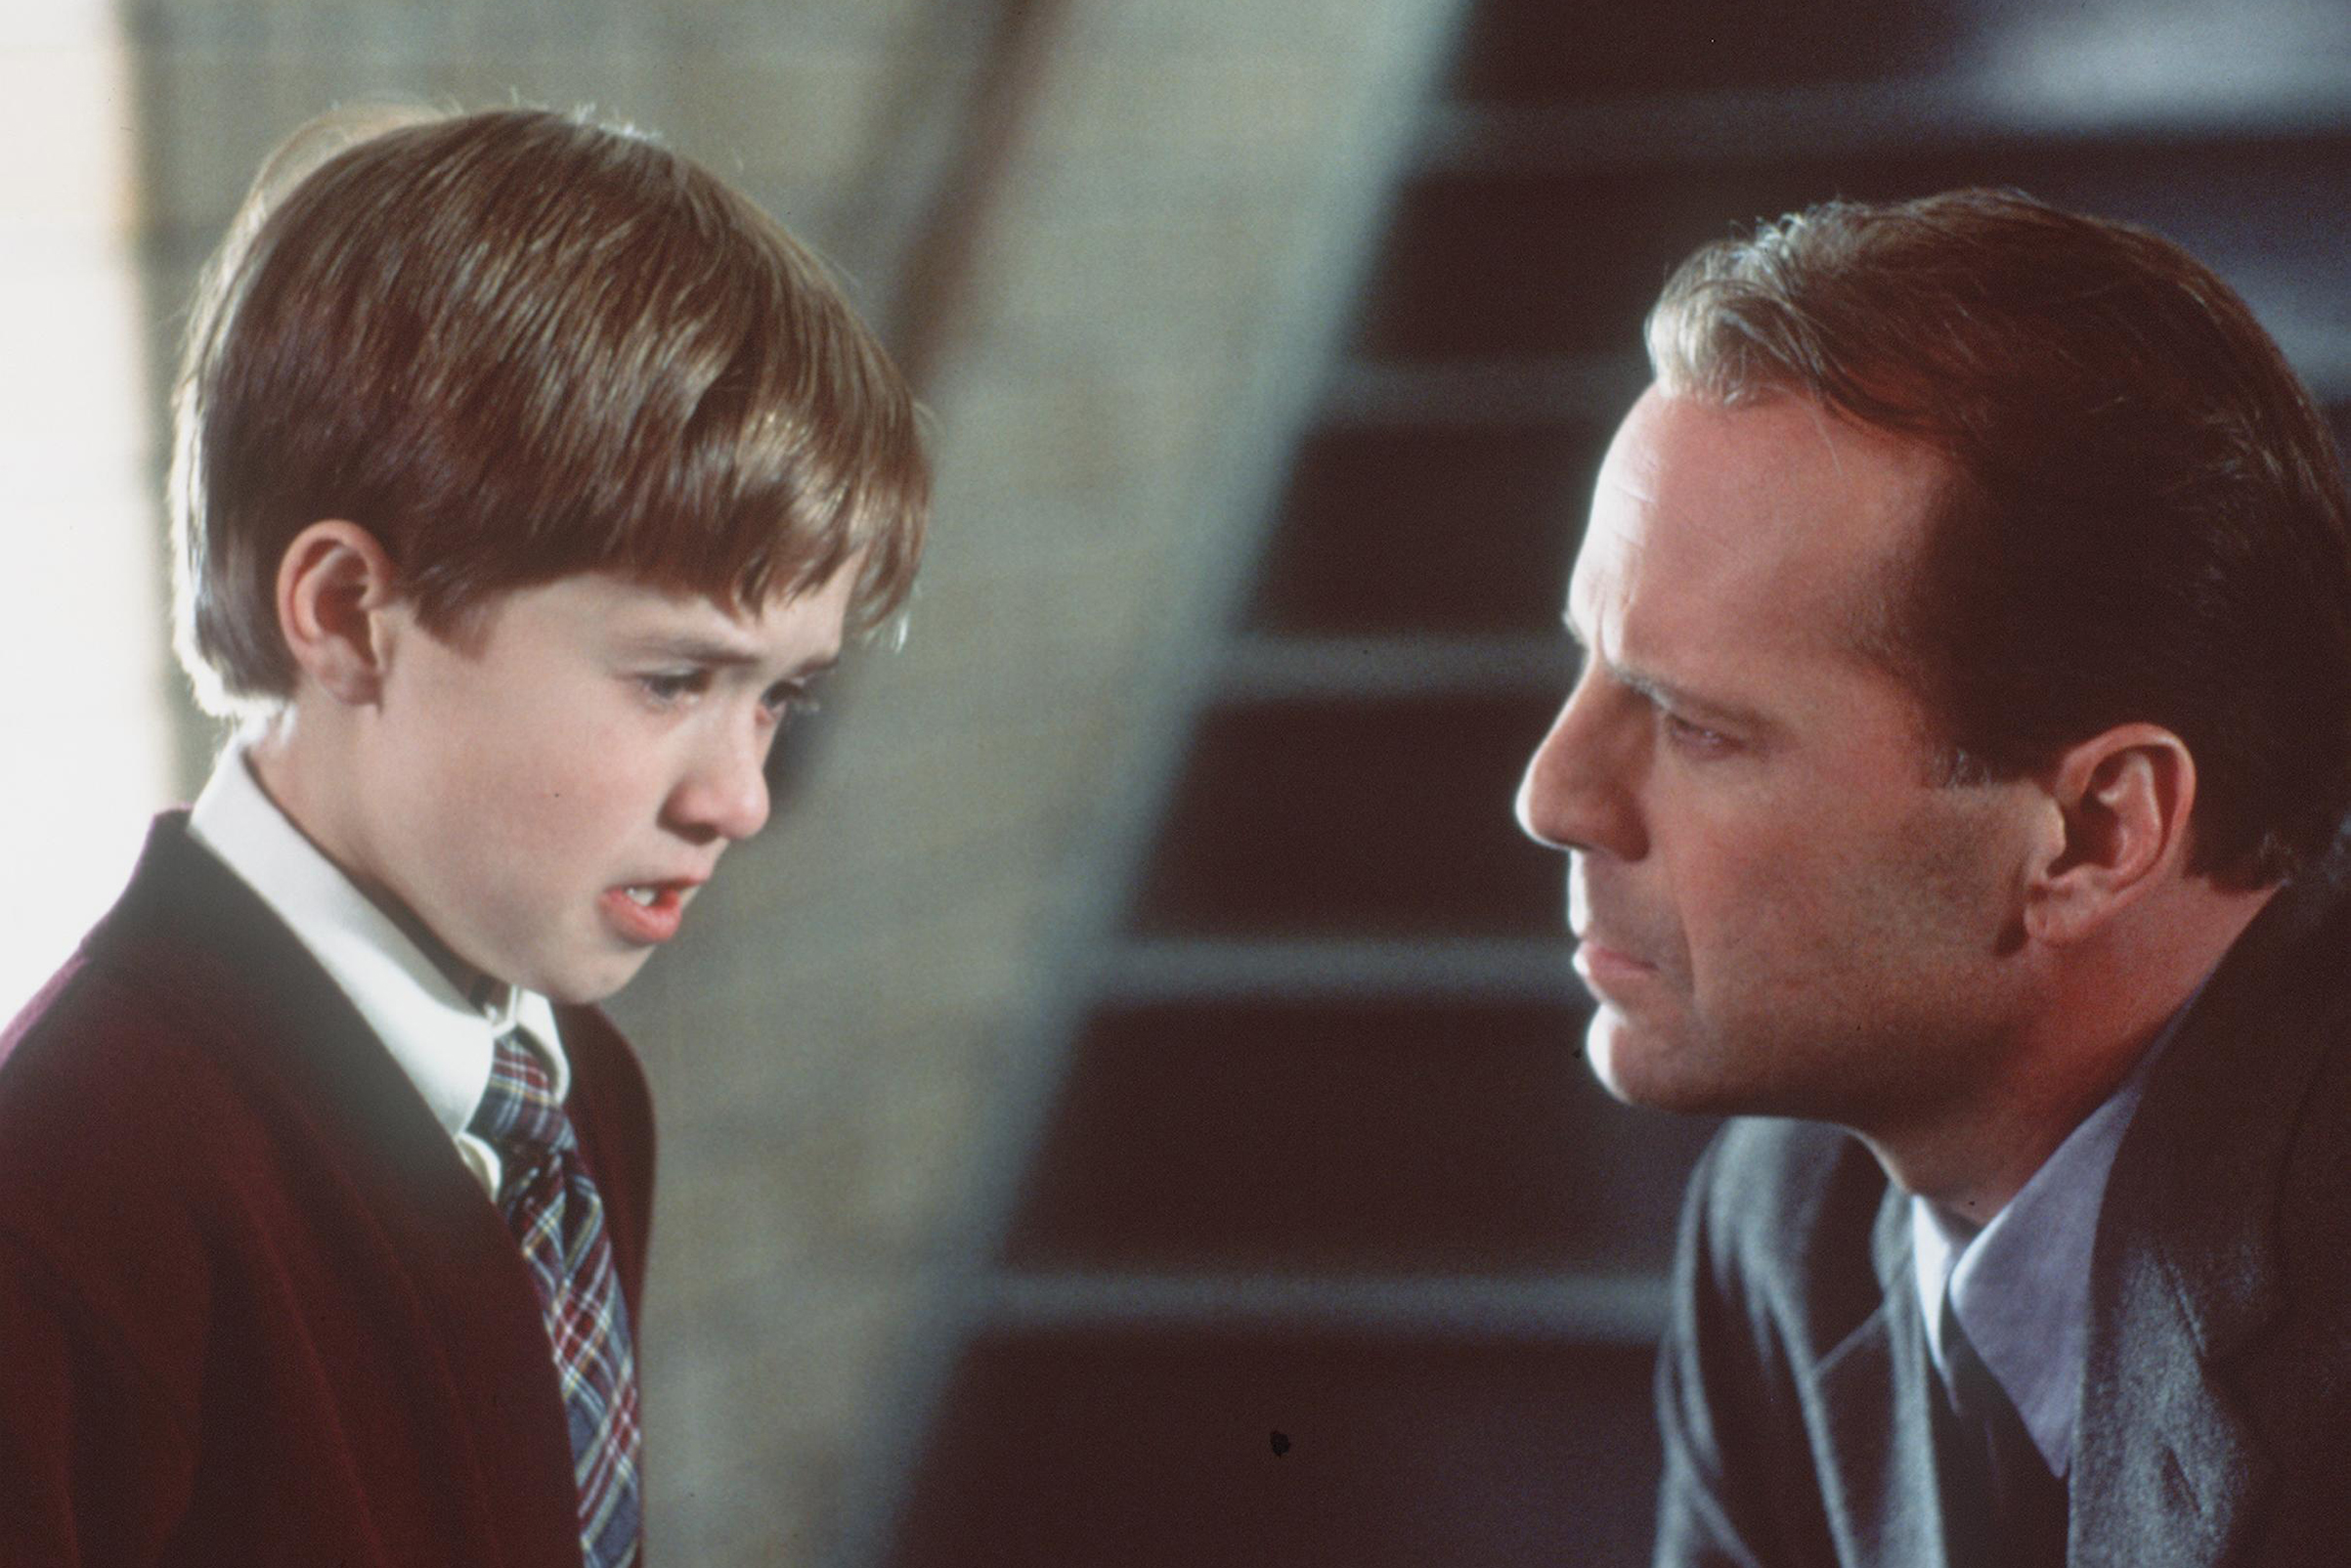 Bruce Willis and Haley Joel Osment in 'The Sixth Sense'.